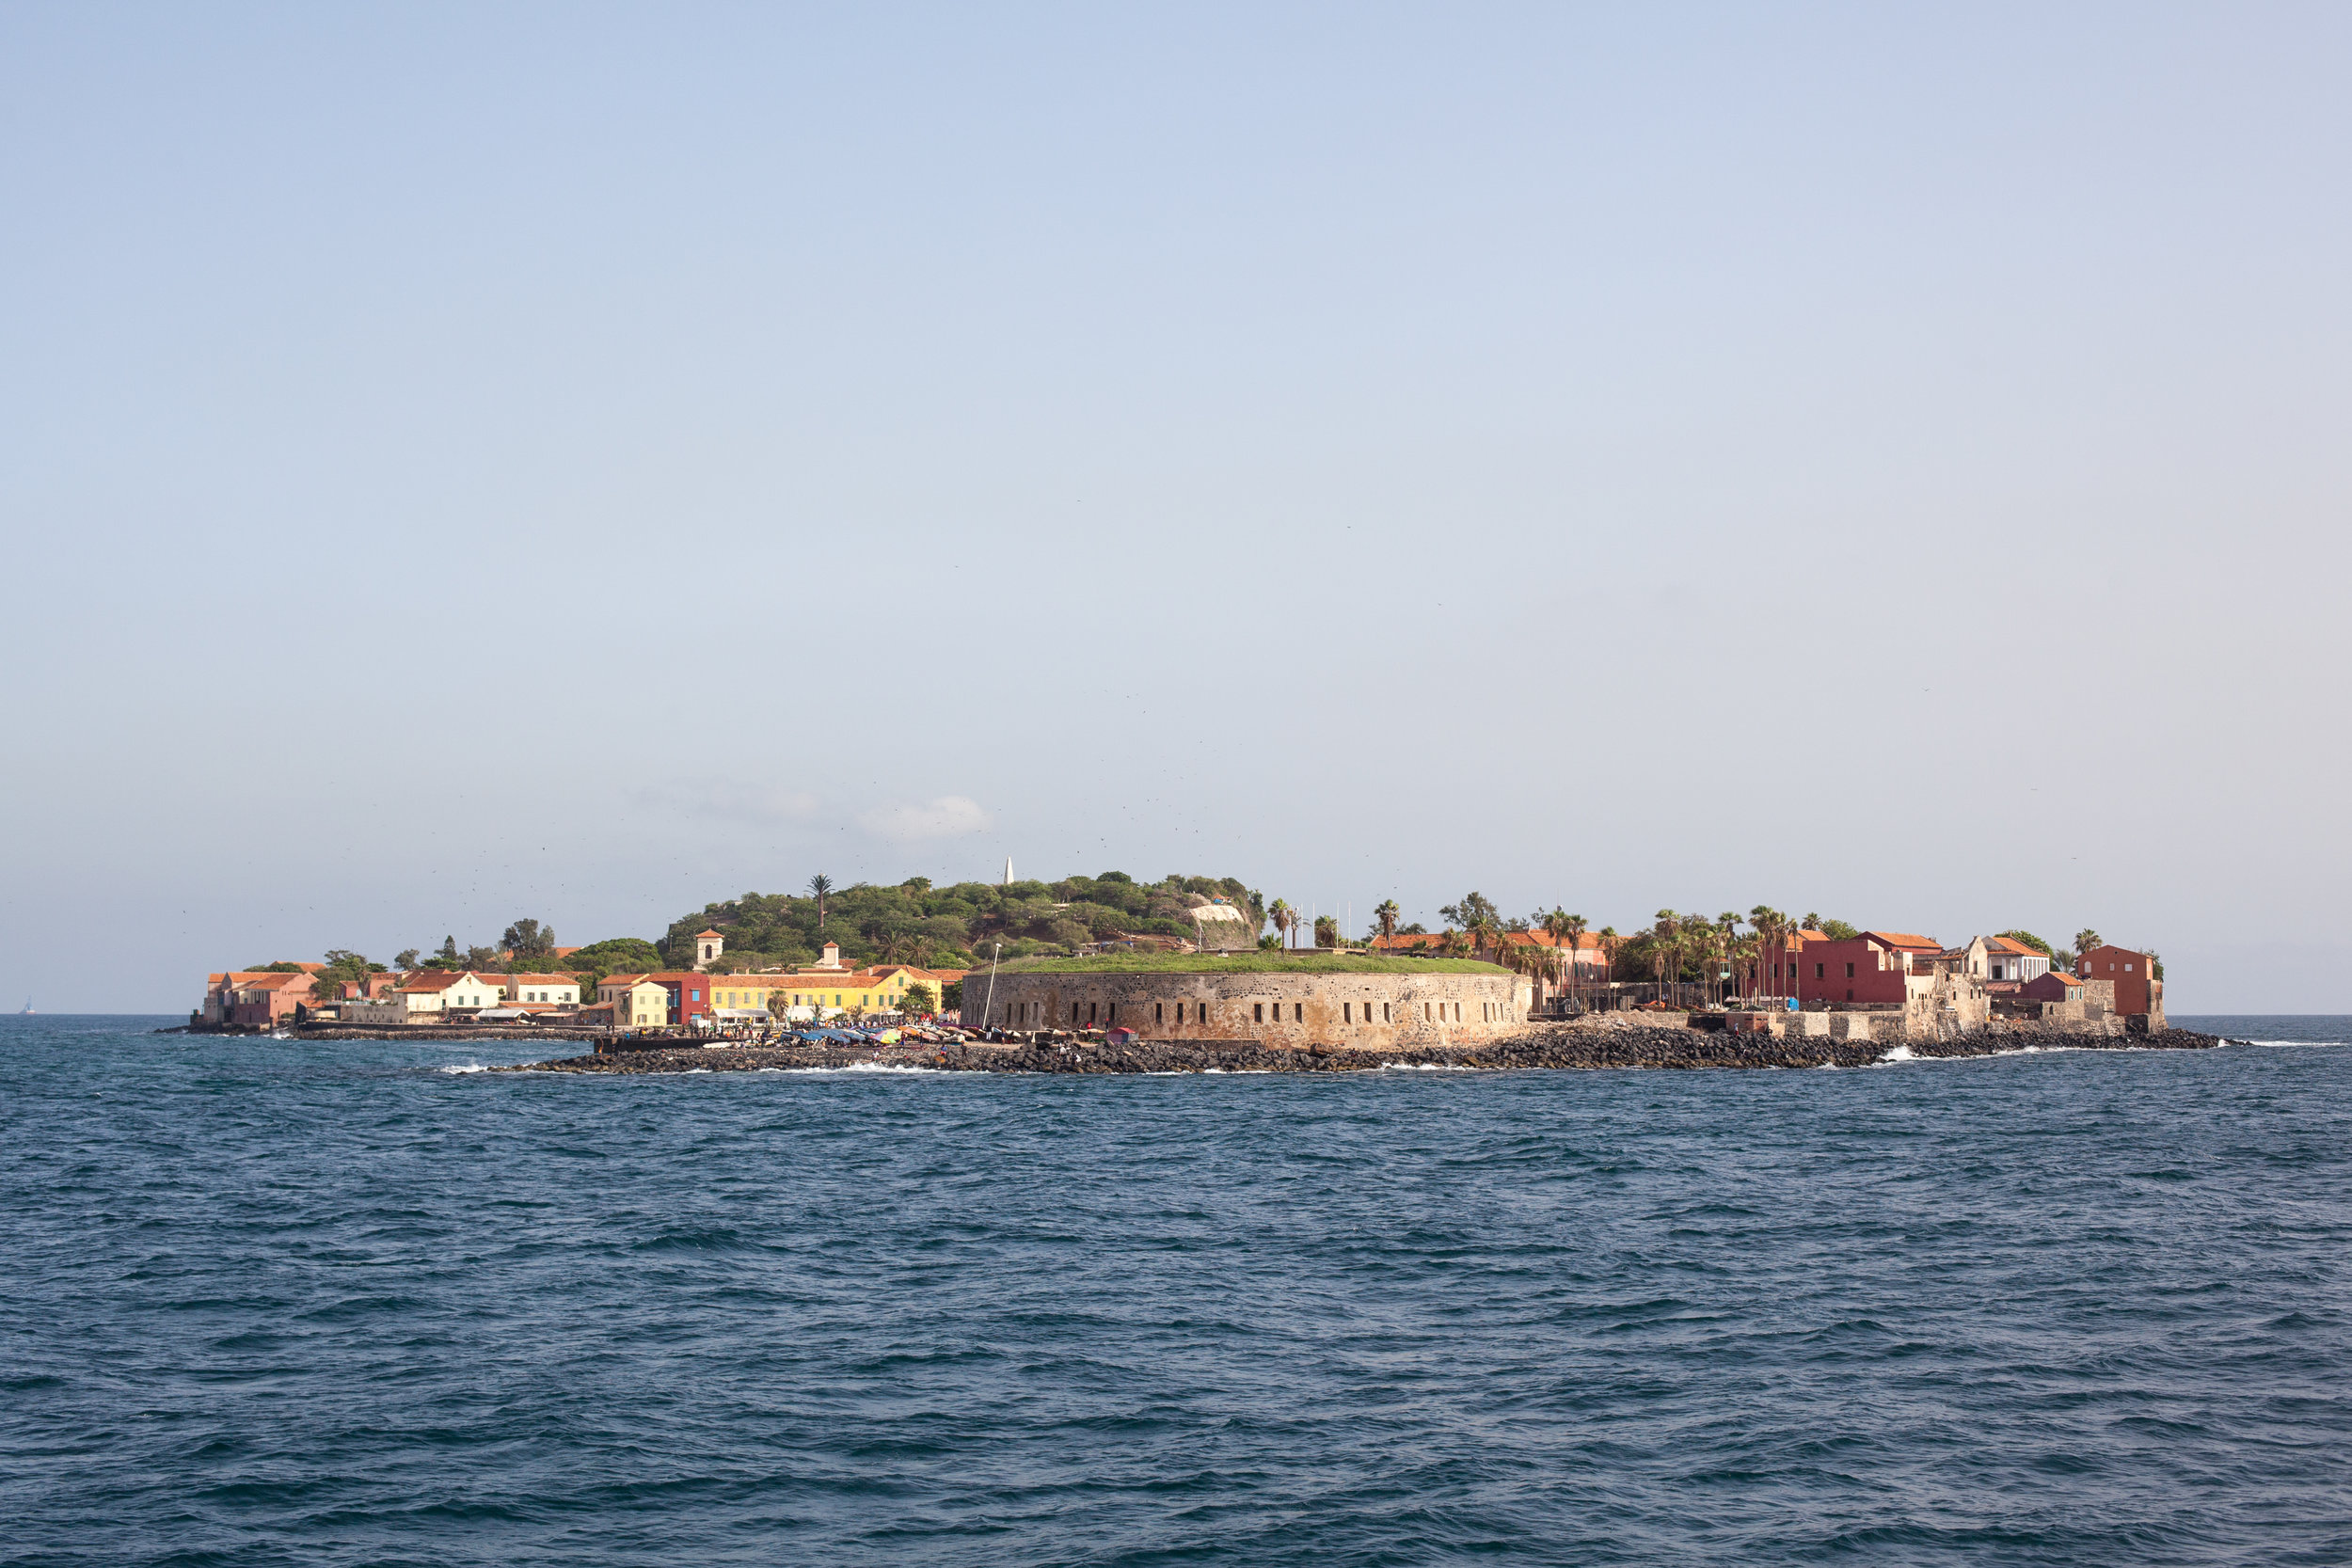 Island of Gorée, Dakar, Senegal.